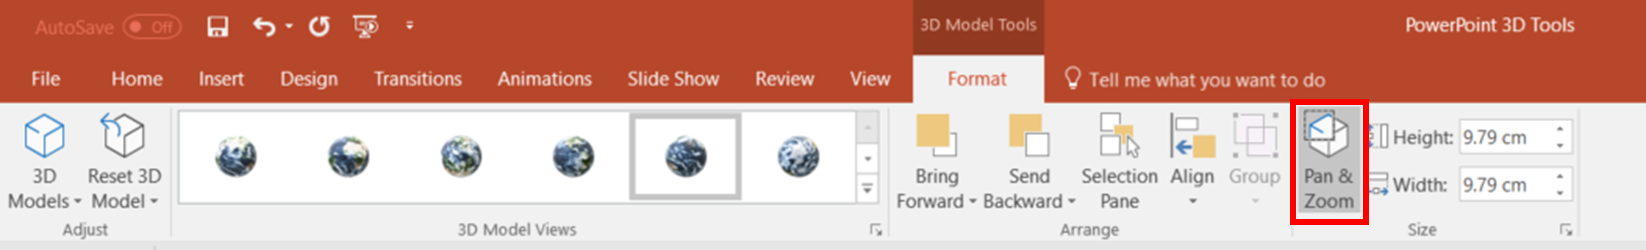 how to use the new 3d model feature in powerpoint